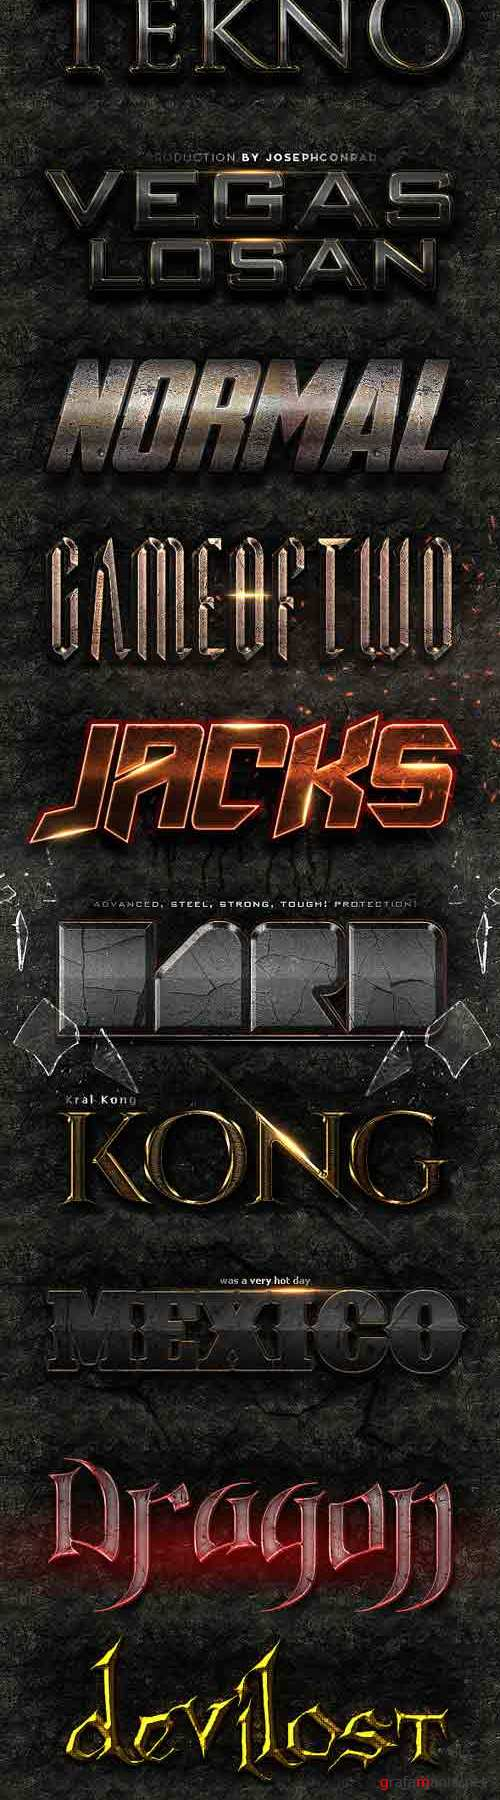 Graphicriver - King Text Styles v2 9061050